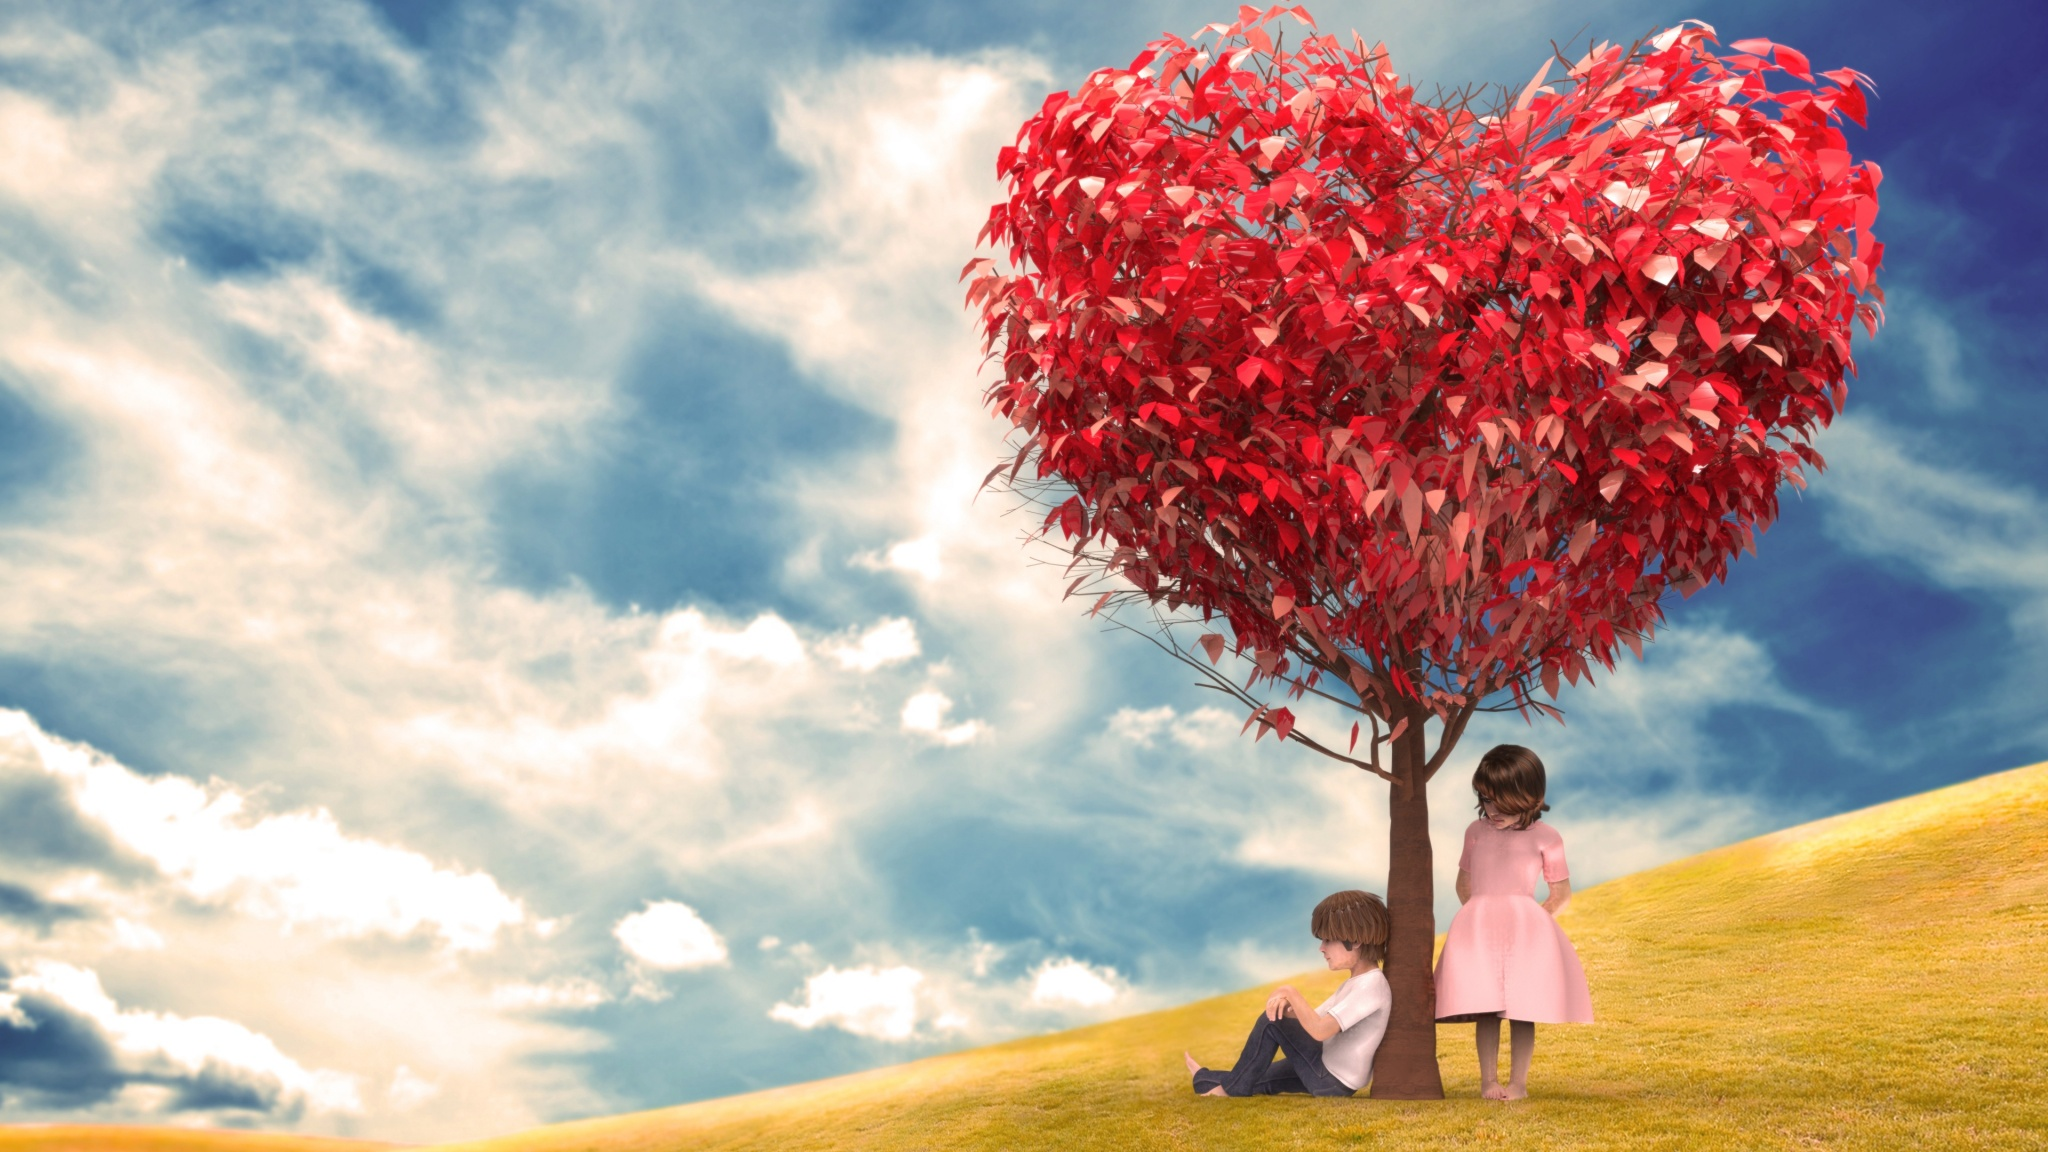 Romantic Baby Couple Wallpapers